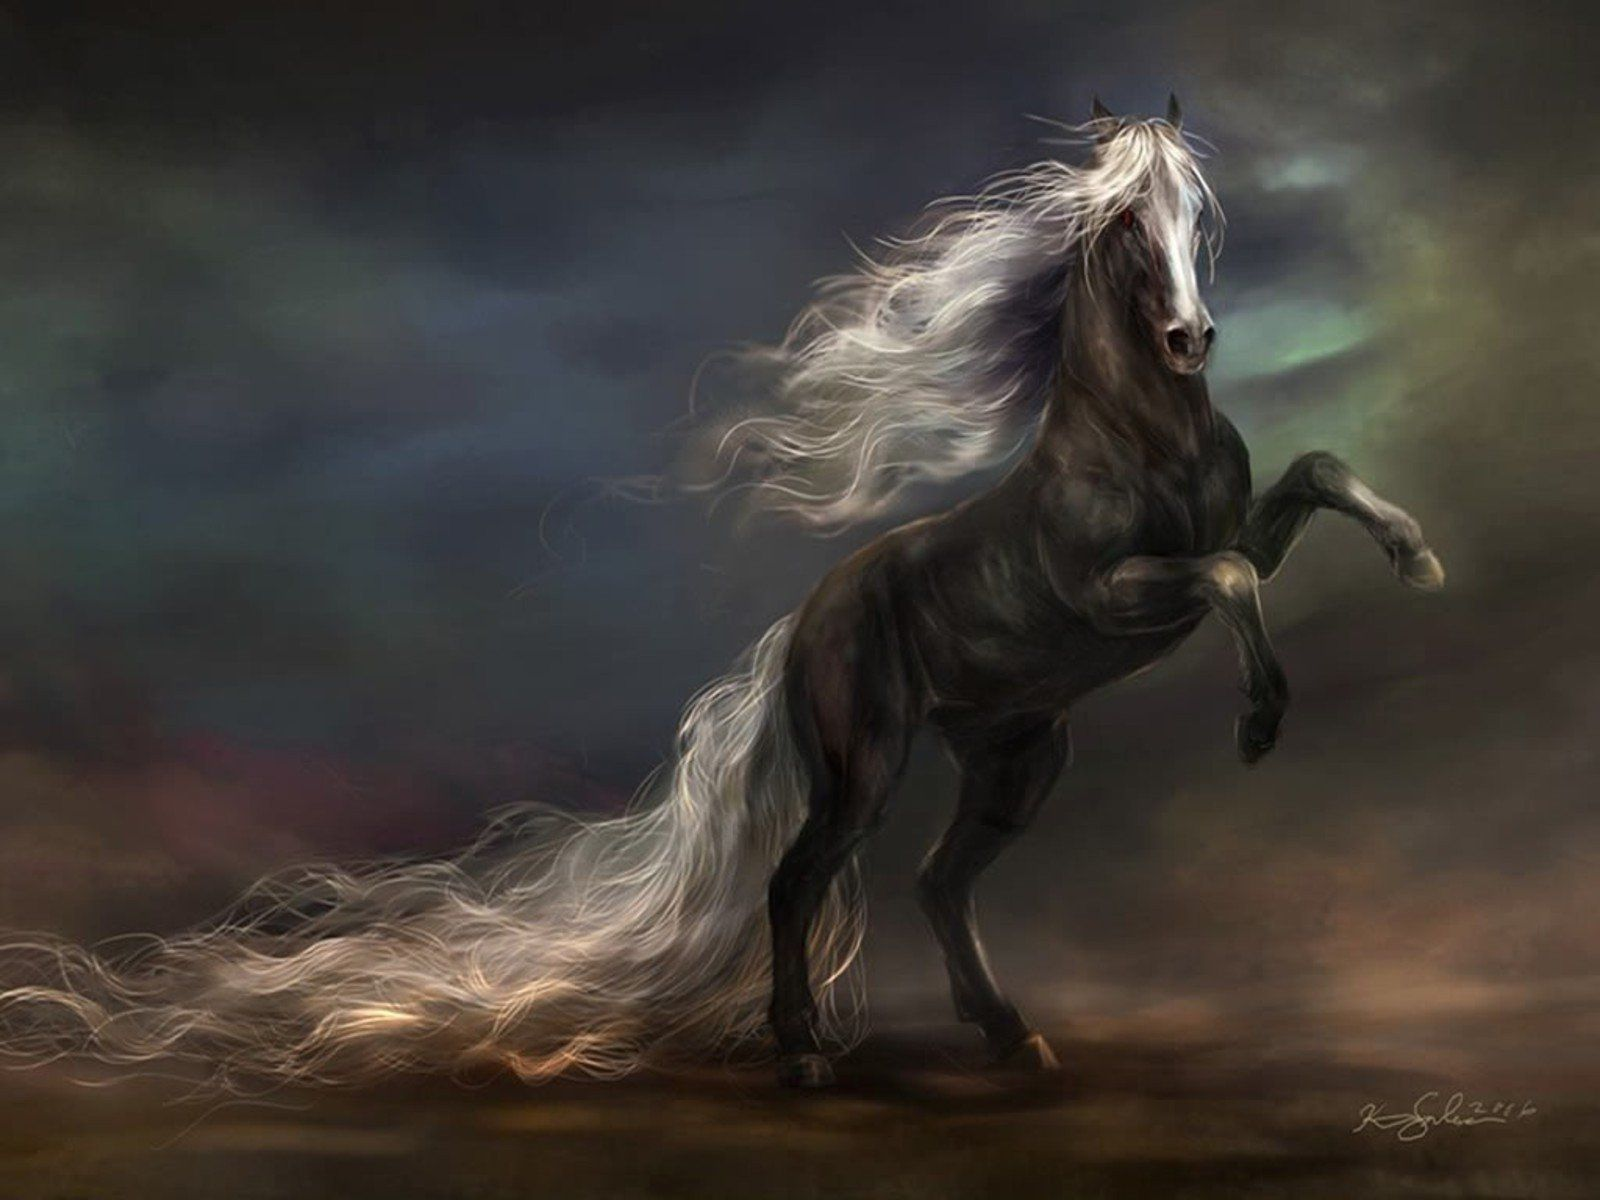 2407 Horse Hd Wallpapers And Background Images Download For Free On All Your Devices Computer Smartphone Or Tablet Wa In 2020 Horse Wallpaper Horses Animal Art